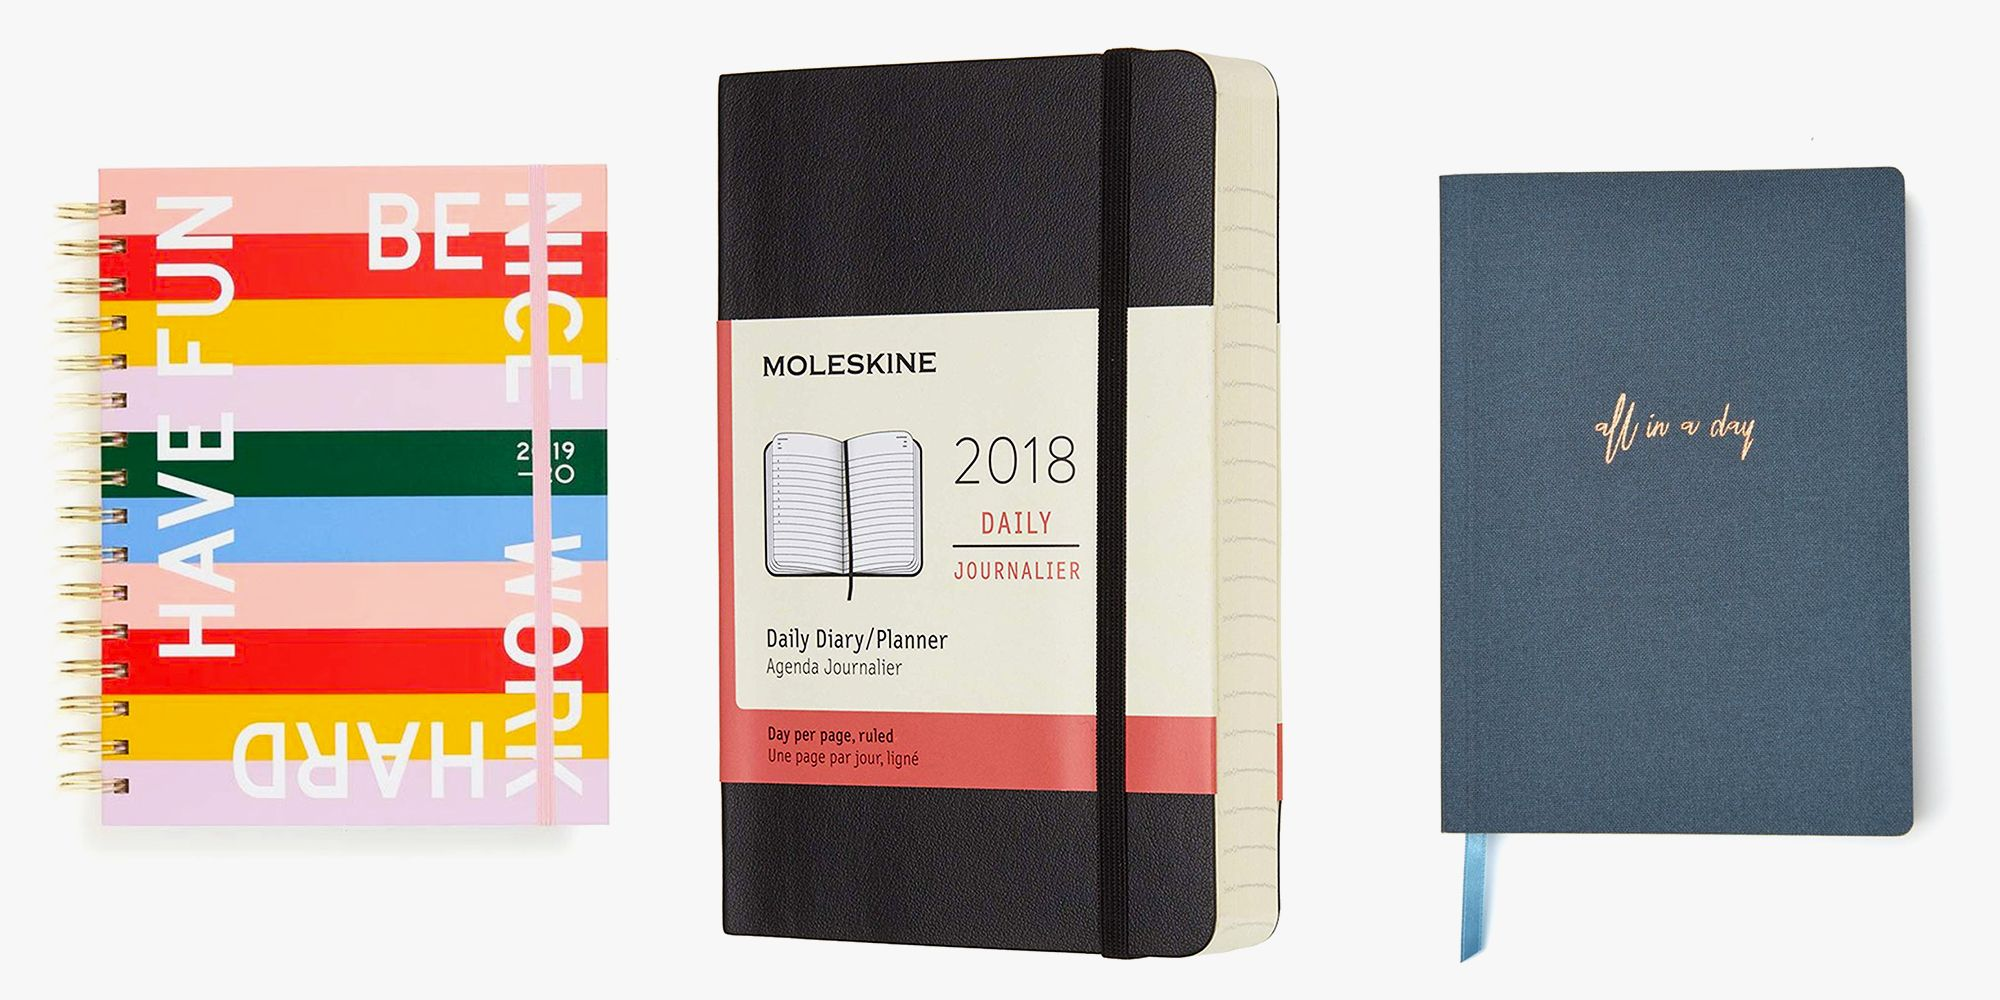 Best Planners 2020.The 13 Best Planners To Get You Actually Organized In 2020